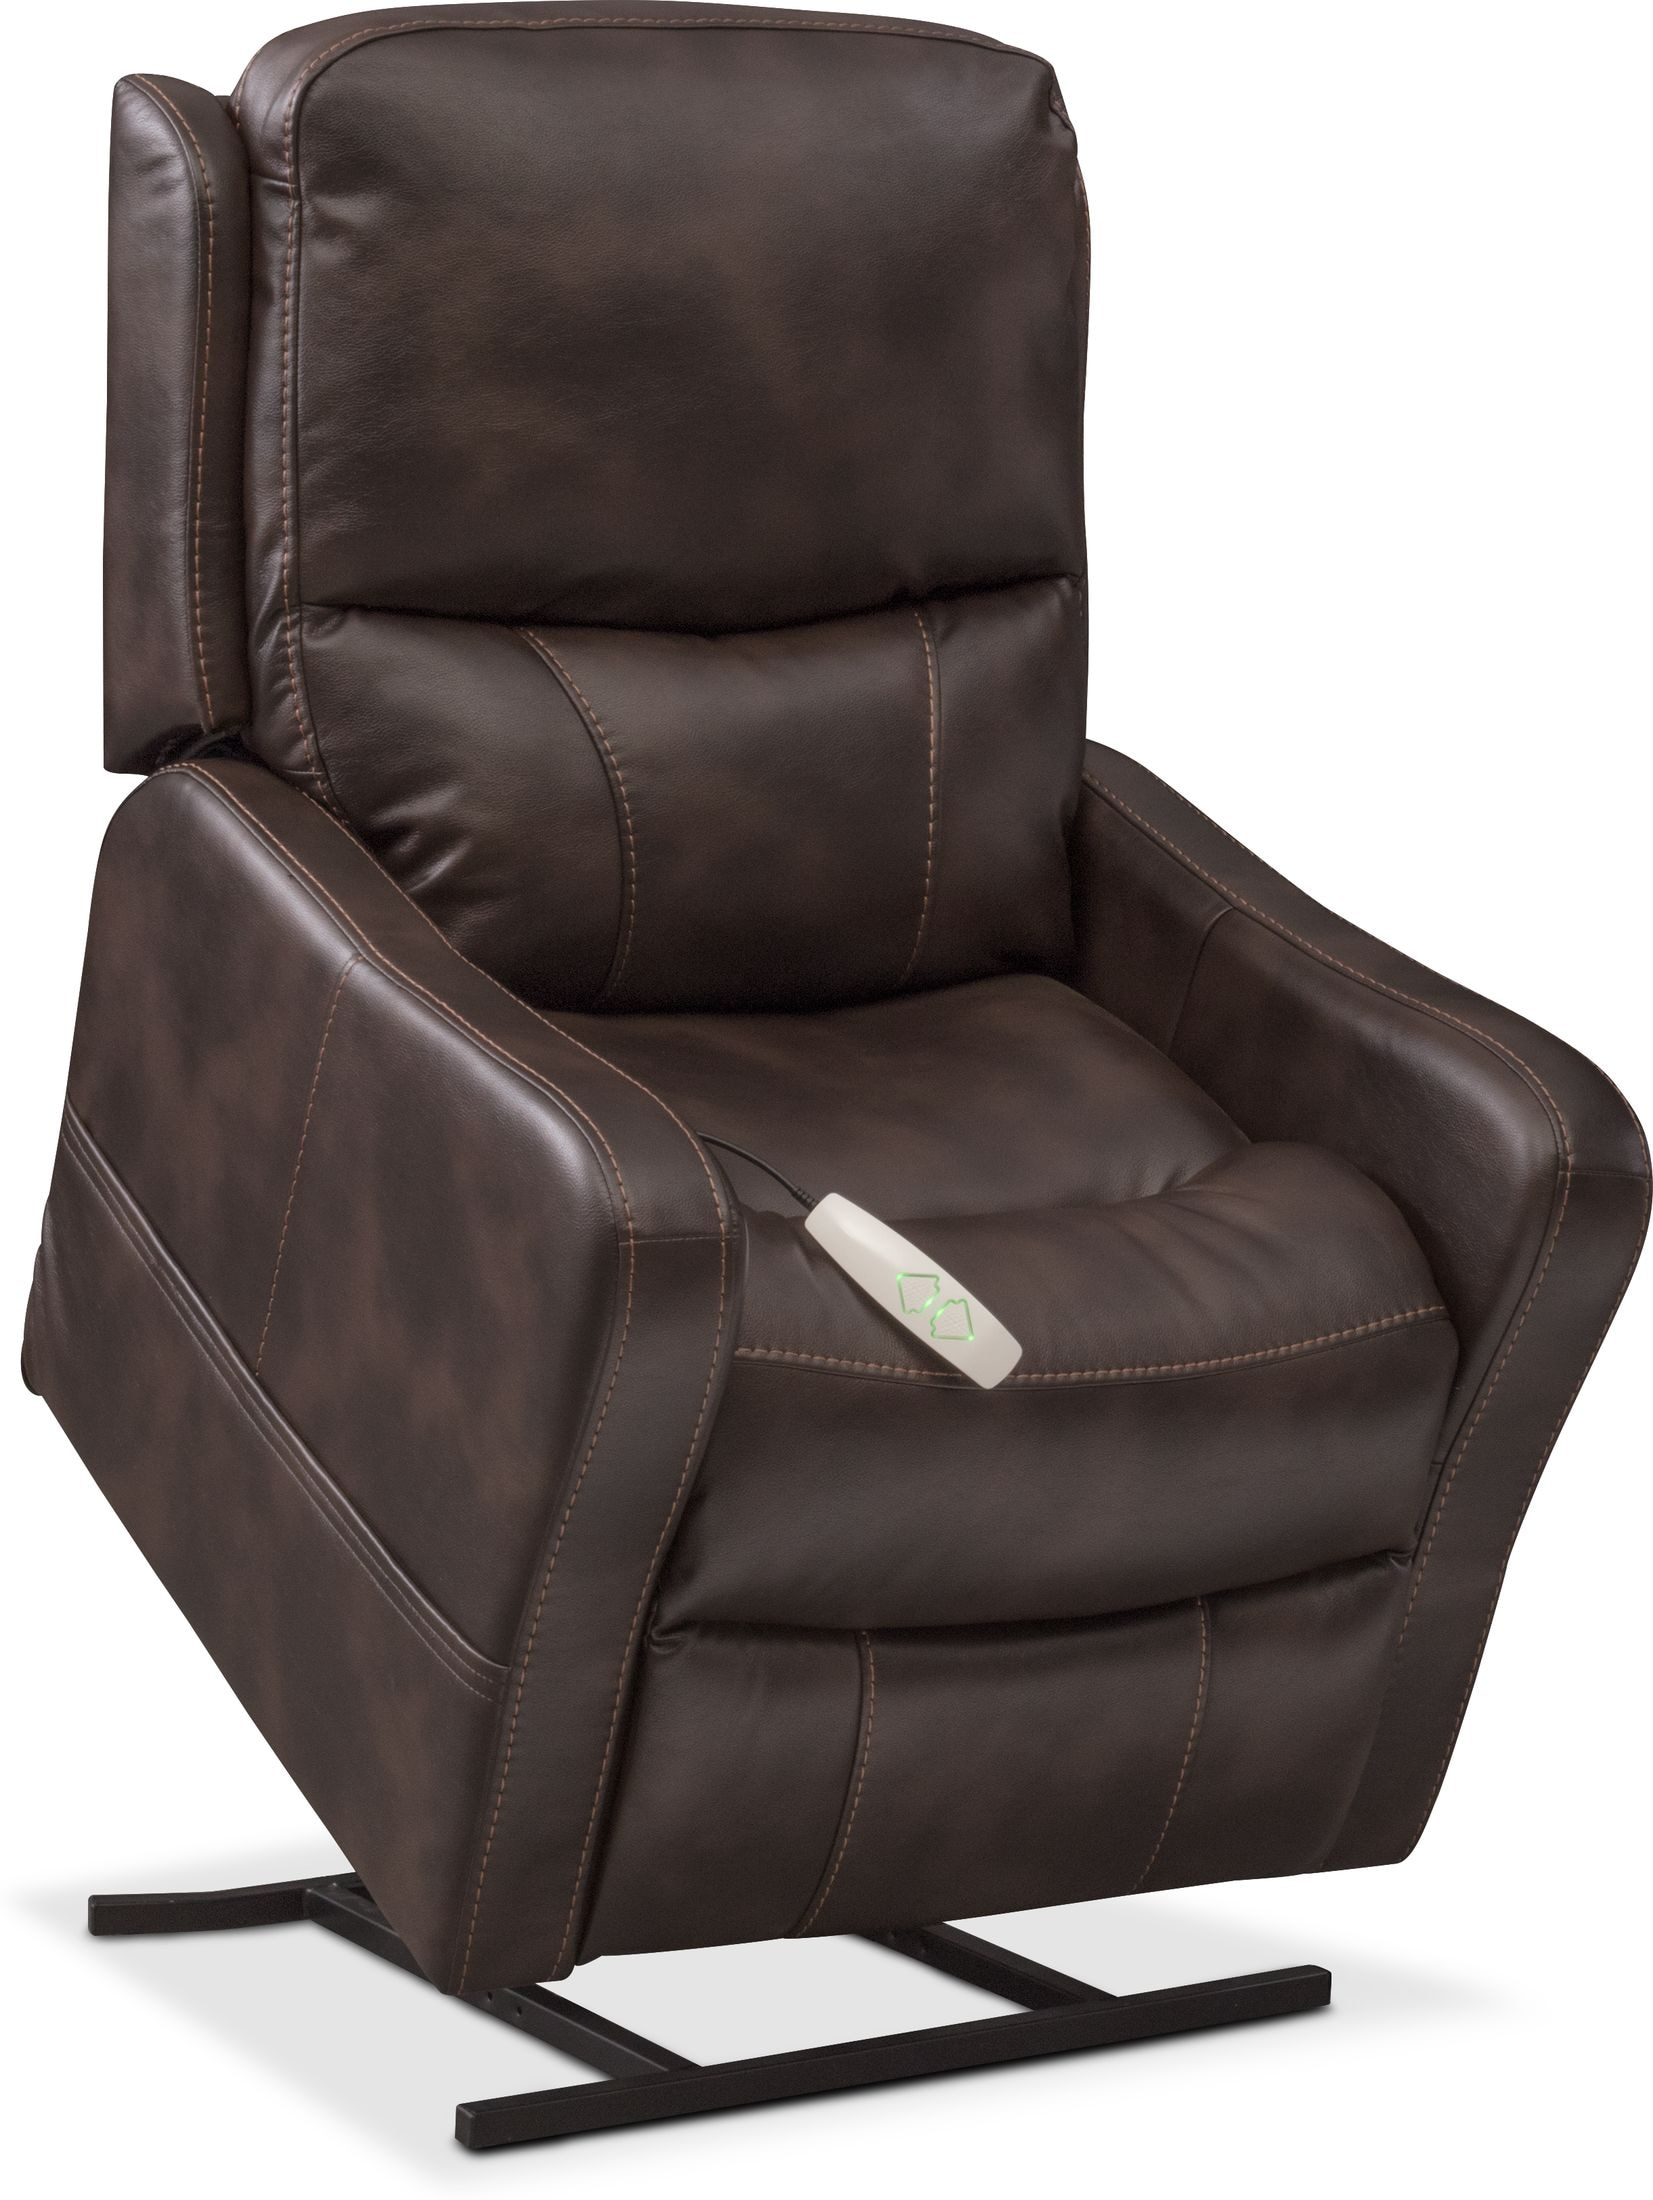 Living Room Furniture - Cabo Power Lift Recliner